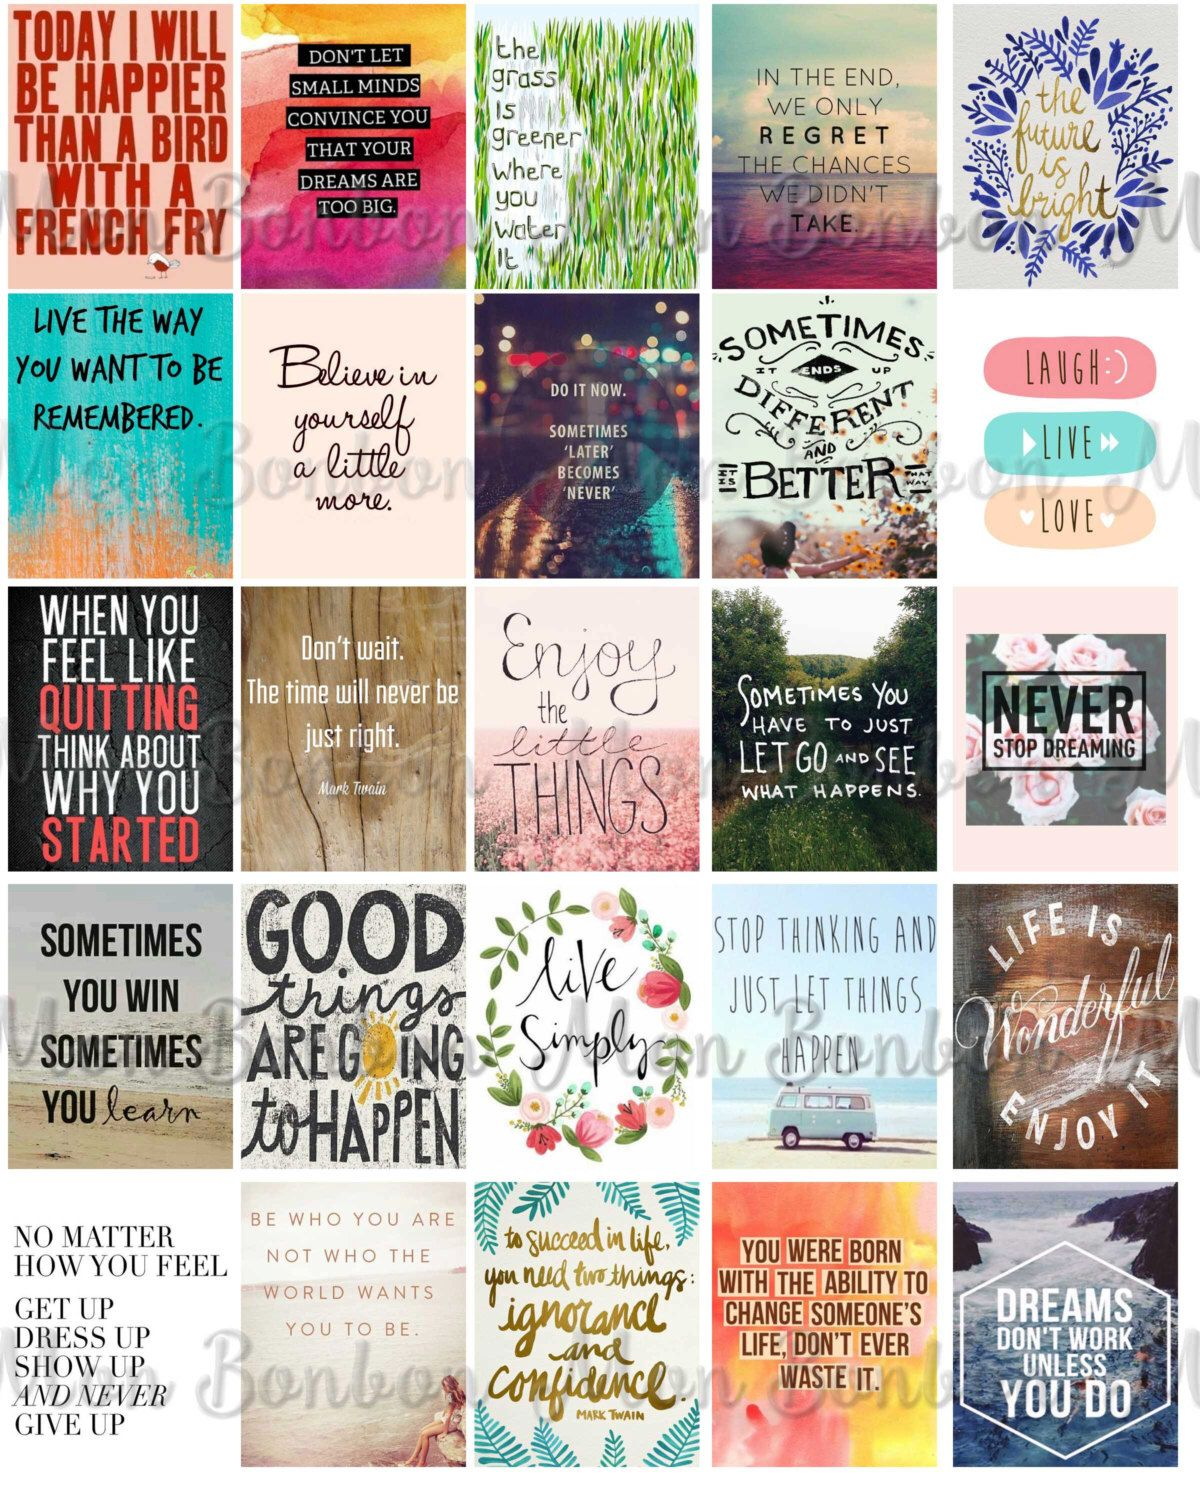 Quote Stickers - Planner Printable - Motivational Quotes - Life Planner Quotes - Download and Print - Fits Erin Condren Life Planner von monbonbon auf Etsy https://www.etsy.com/de/listing/246909593/quote-stickers-planner-printable